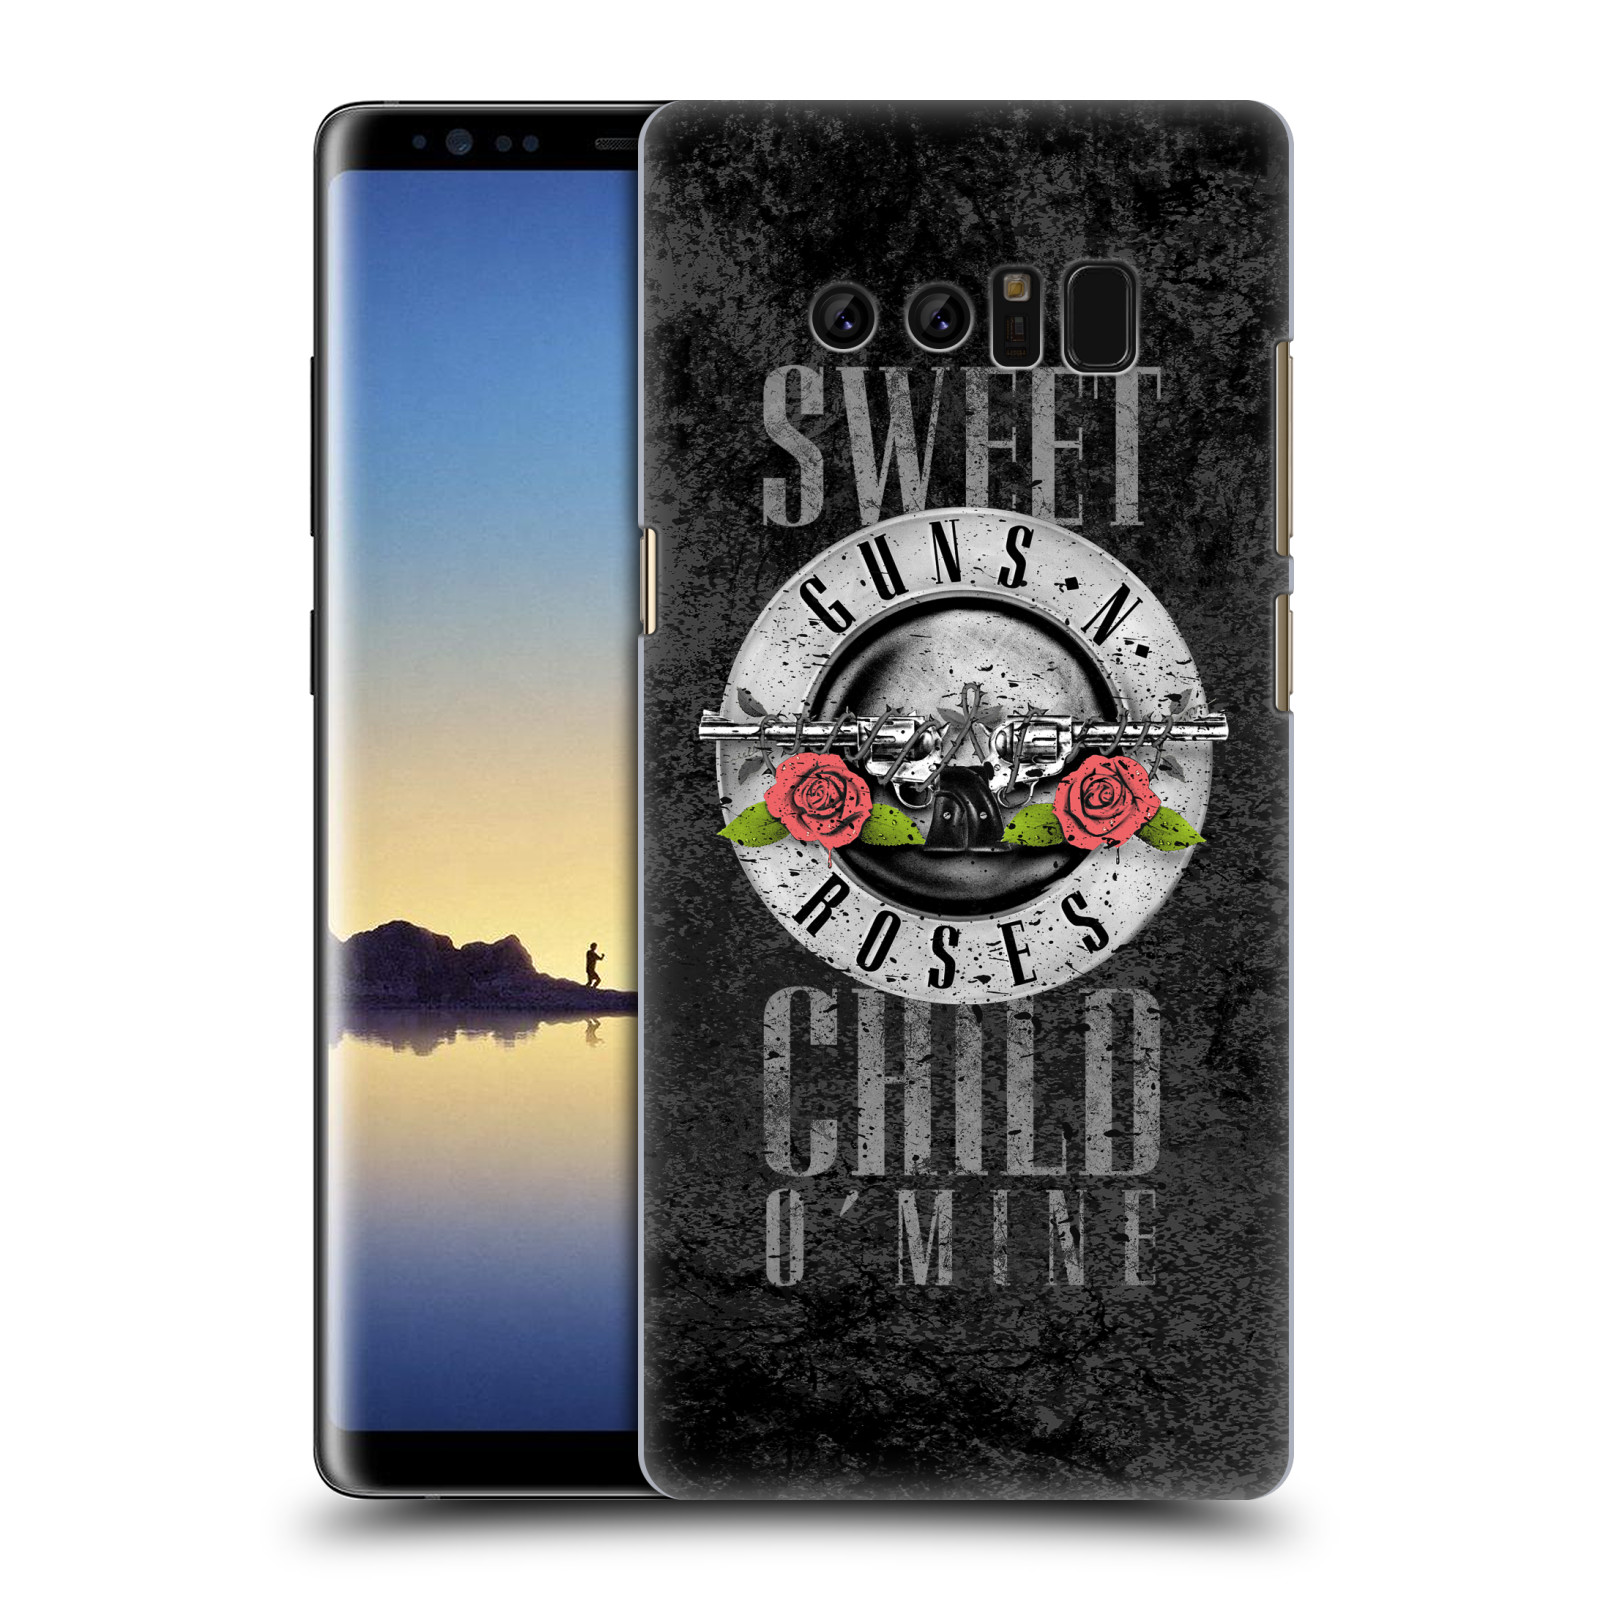 Plastové pouzdro na mobil Samsung Galaxy Note 8 - Head Case - Guns N' Roses - Sweet Child